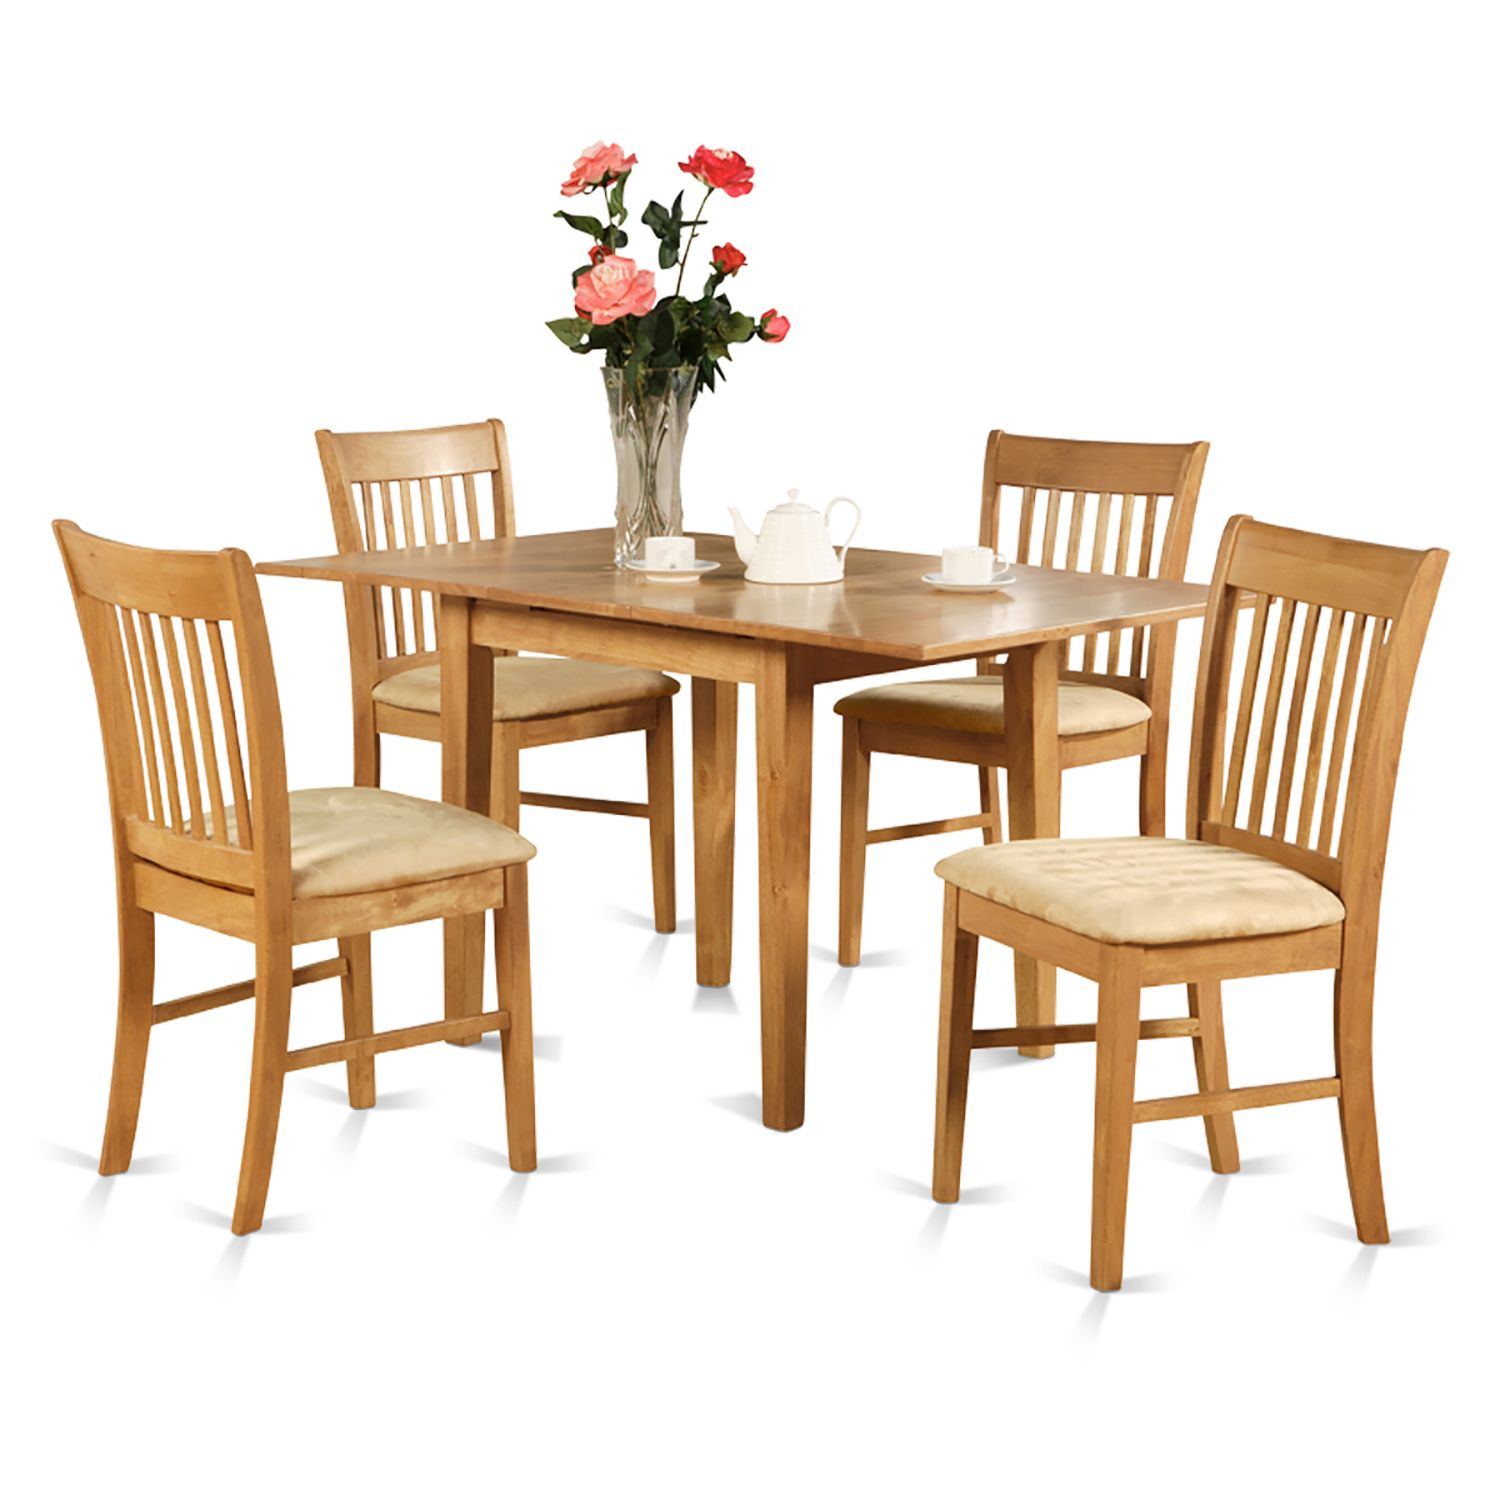 Have Supper In Luxurious And Incredibly Coziness With Norfolk Adorable High Quality Dining Room Sets 2018